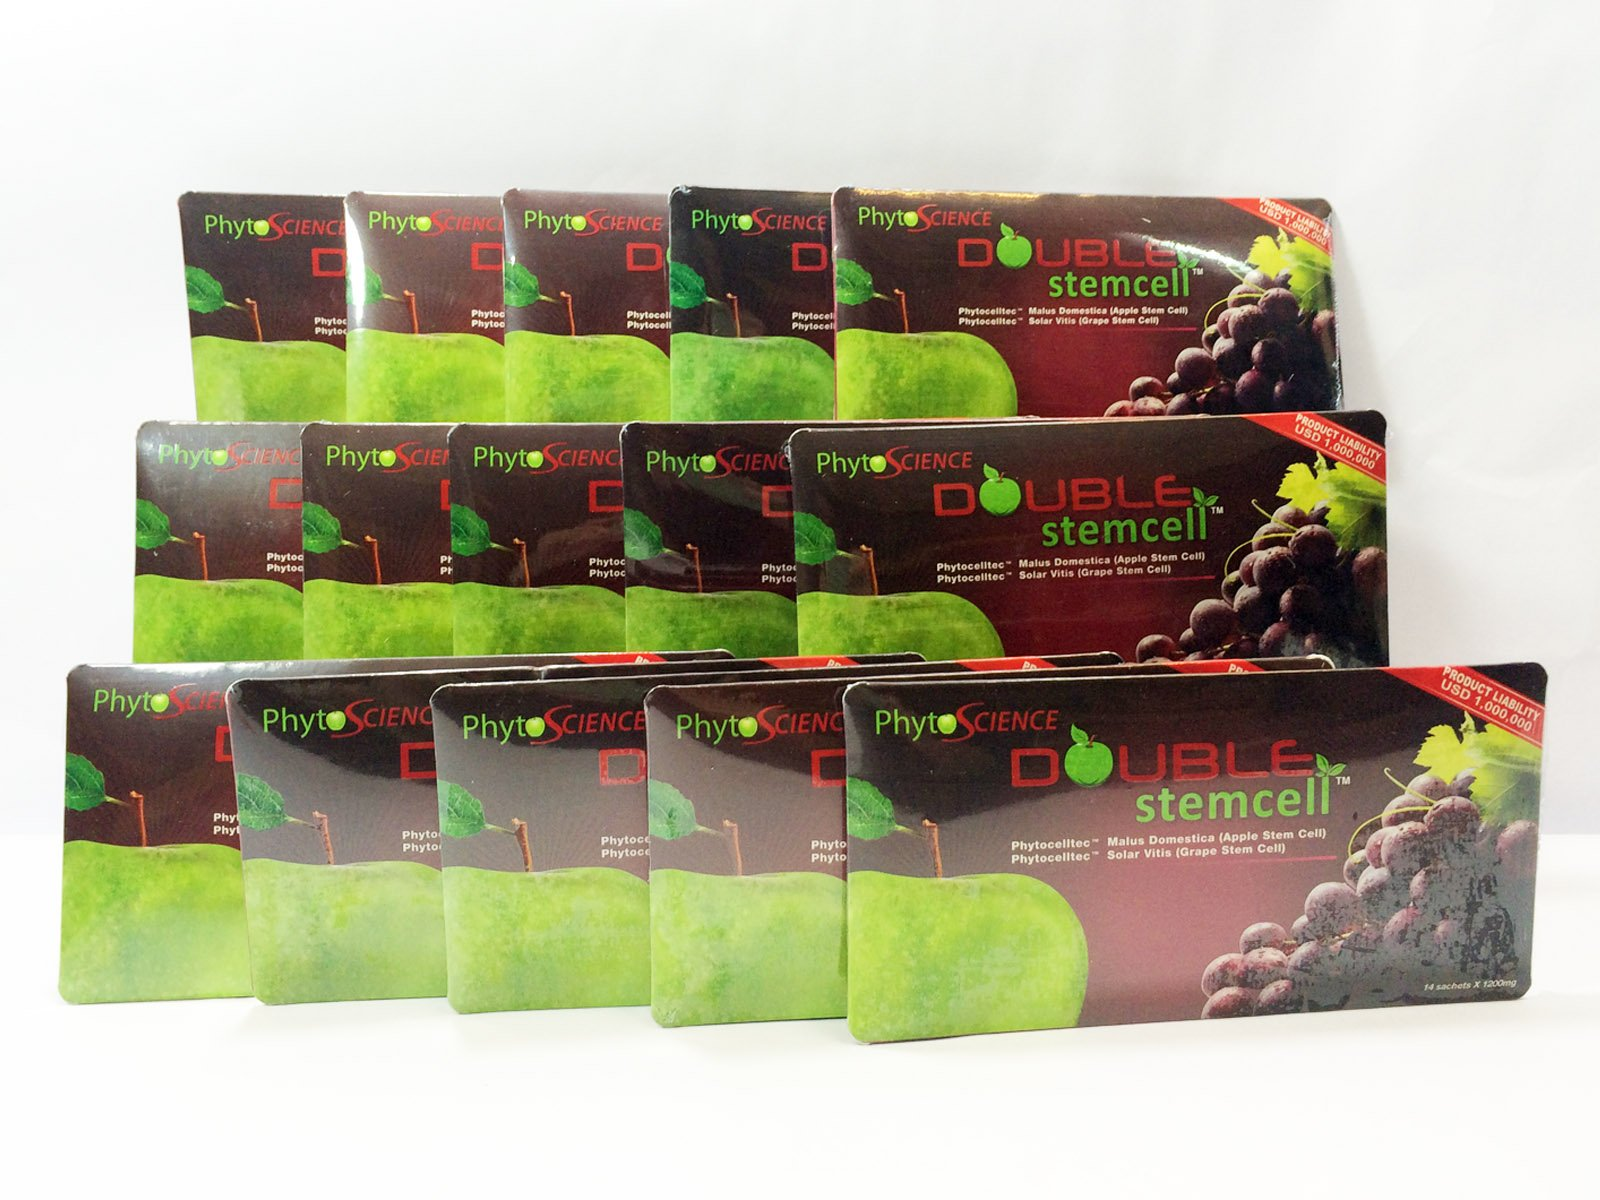 60 Pack Double StemCell Phytoscience